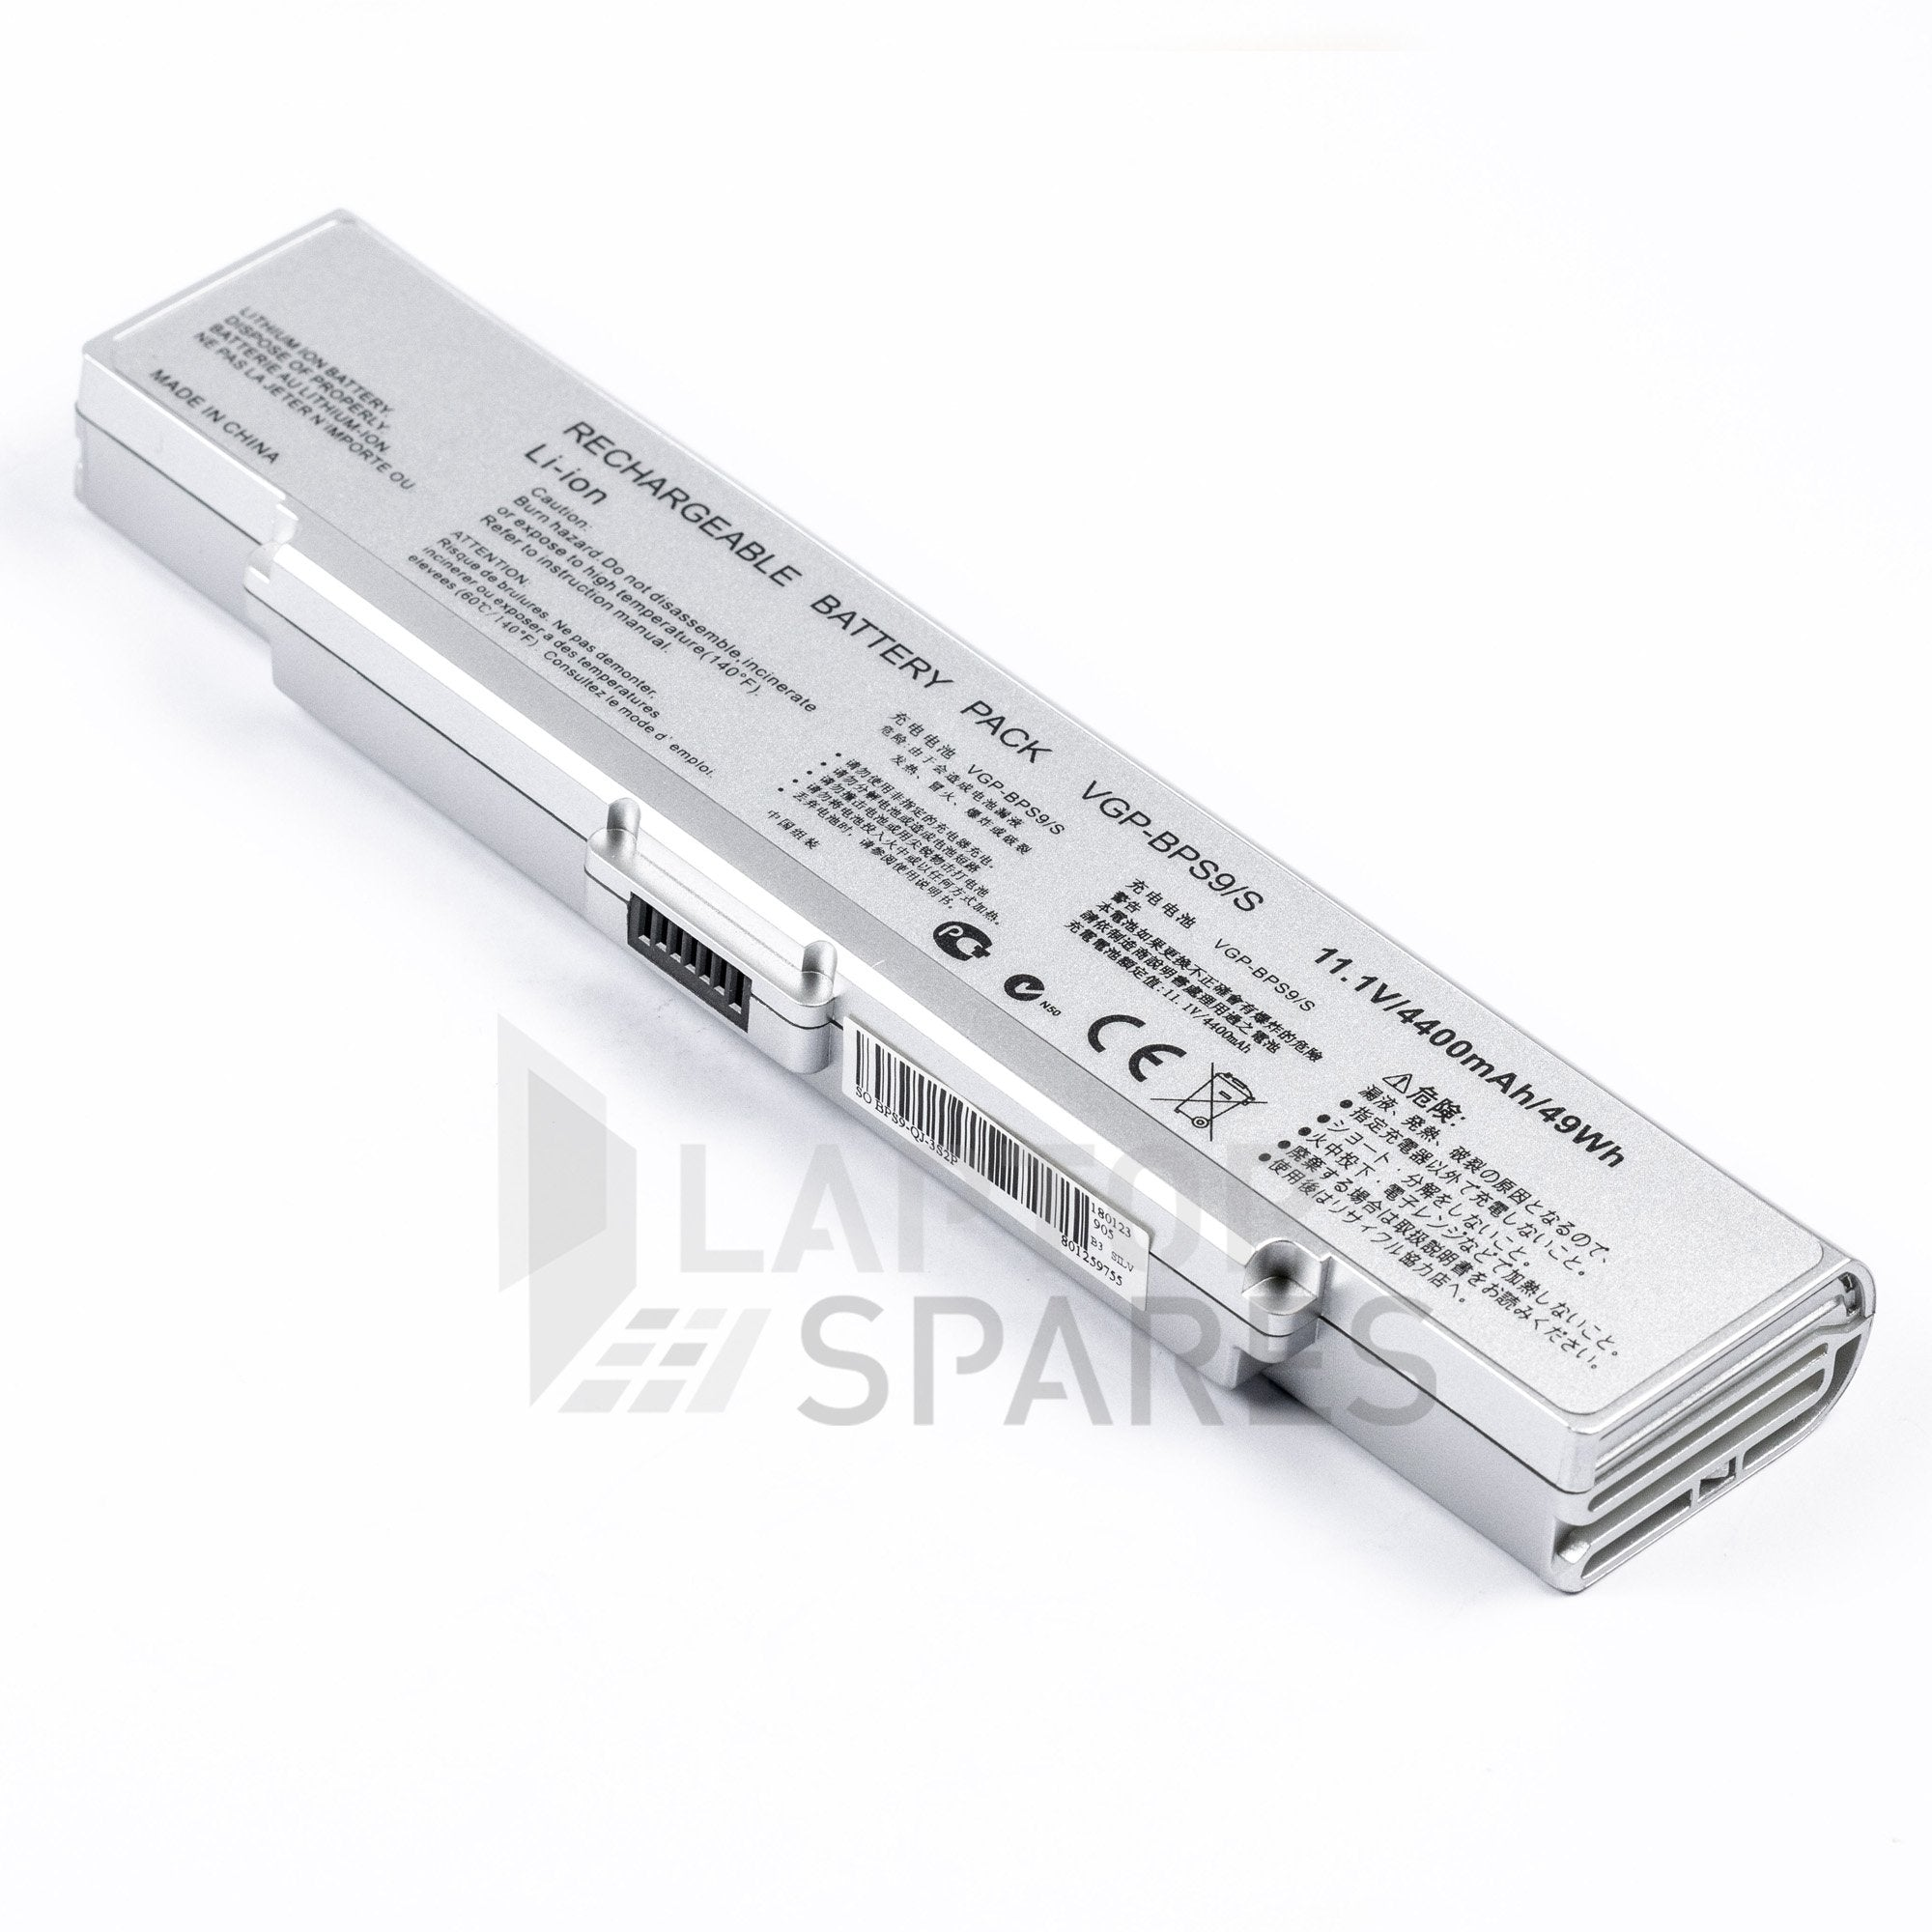 Sony VAIO VGN-CR13T/L 4400mAh 6 Cell Battery